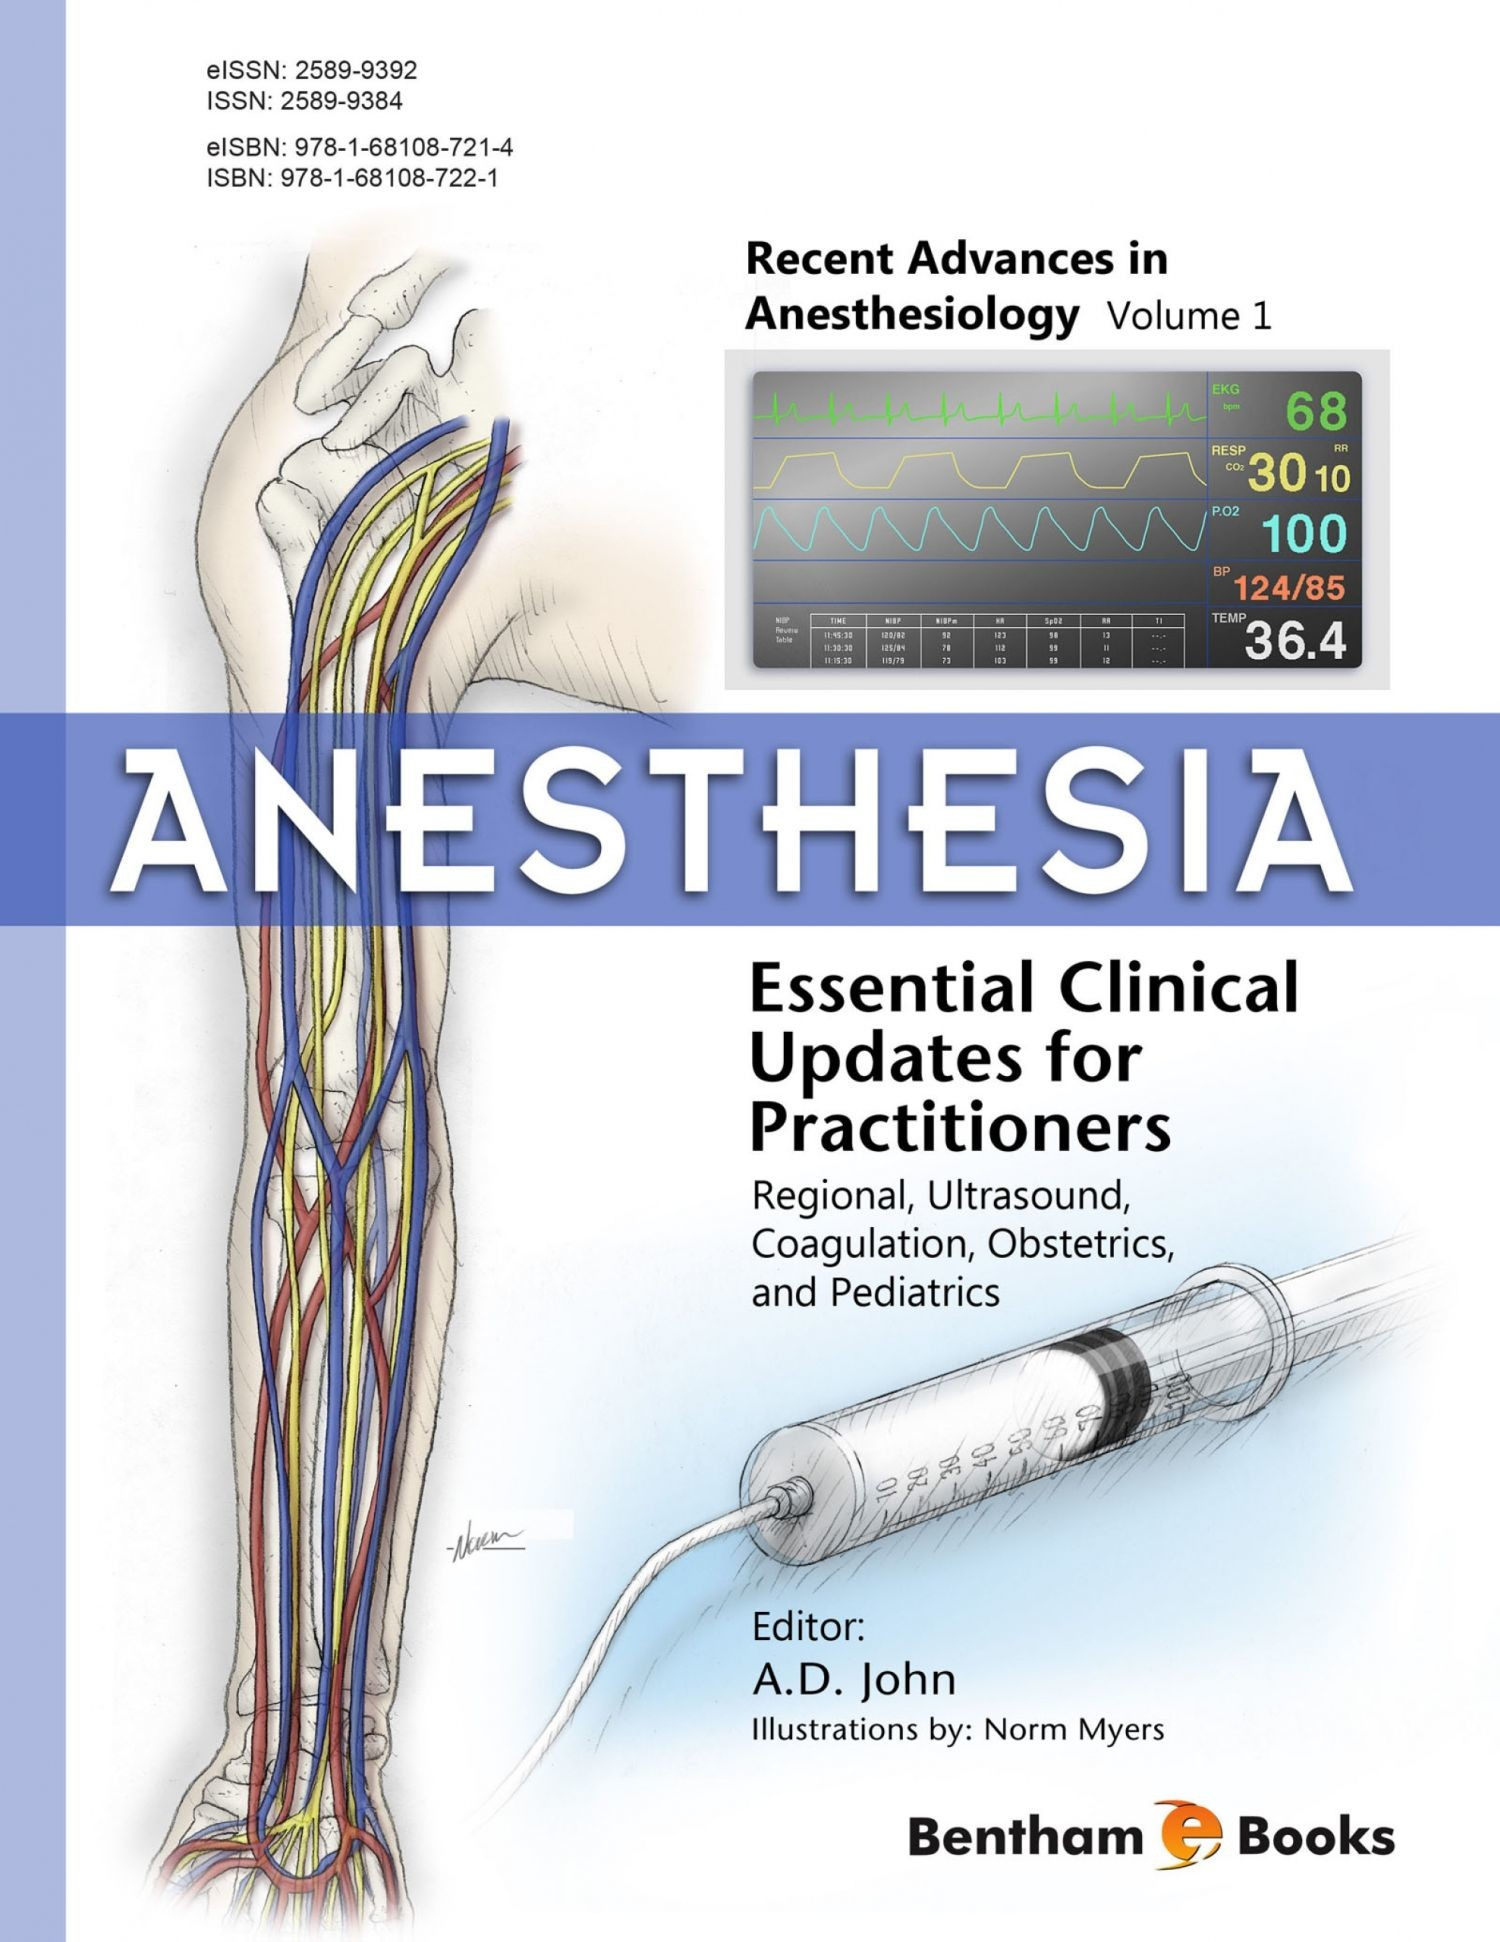 Anesthesia: Essential Clinical Updates for Practitioners - Regional, Ultrasound, Coagulation, Obstetrics and Pediatrics